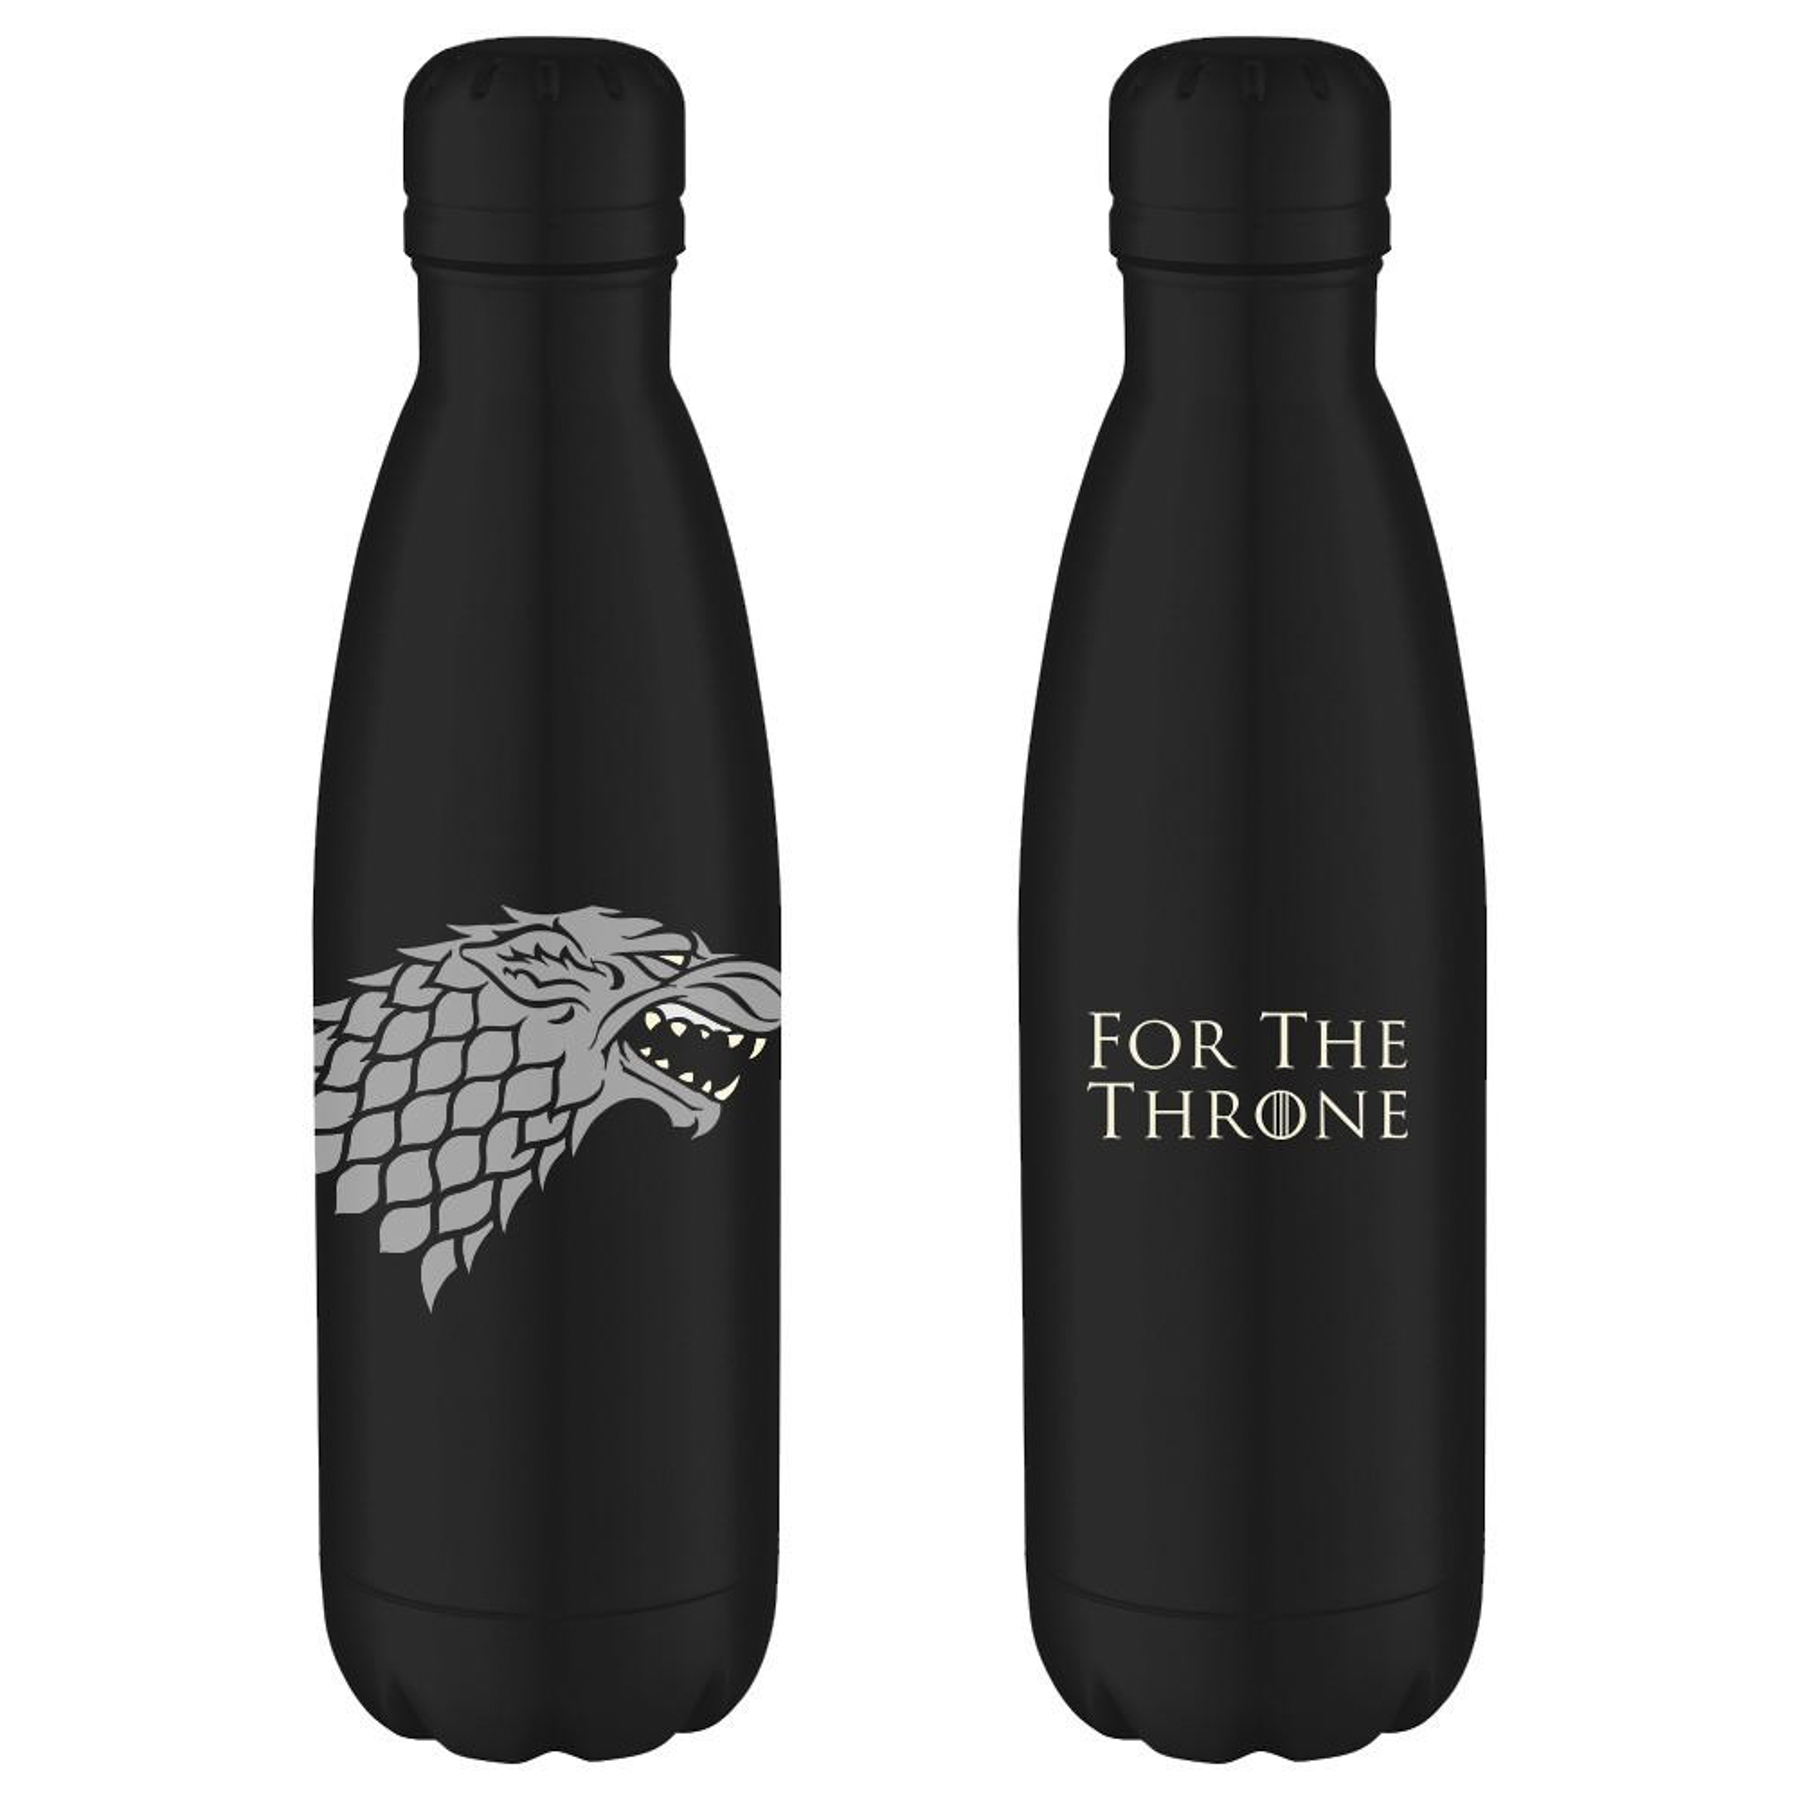 For the Throne Stark Sigil Water Bottle From Game of Thrones https://shop.hbo.com/products/for-the-throne-stark-sigil-water-bottle-from-game-of-thrones CR: HBO Shop